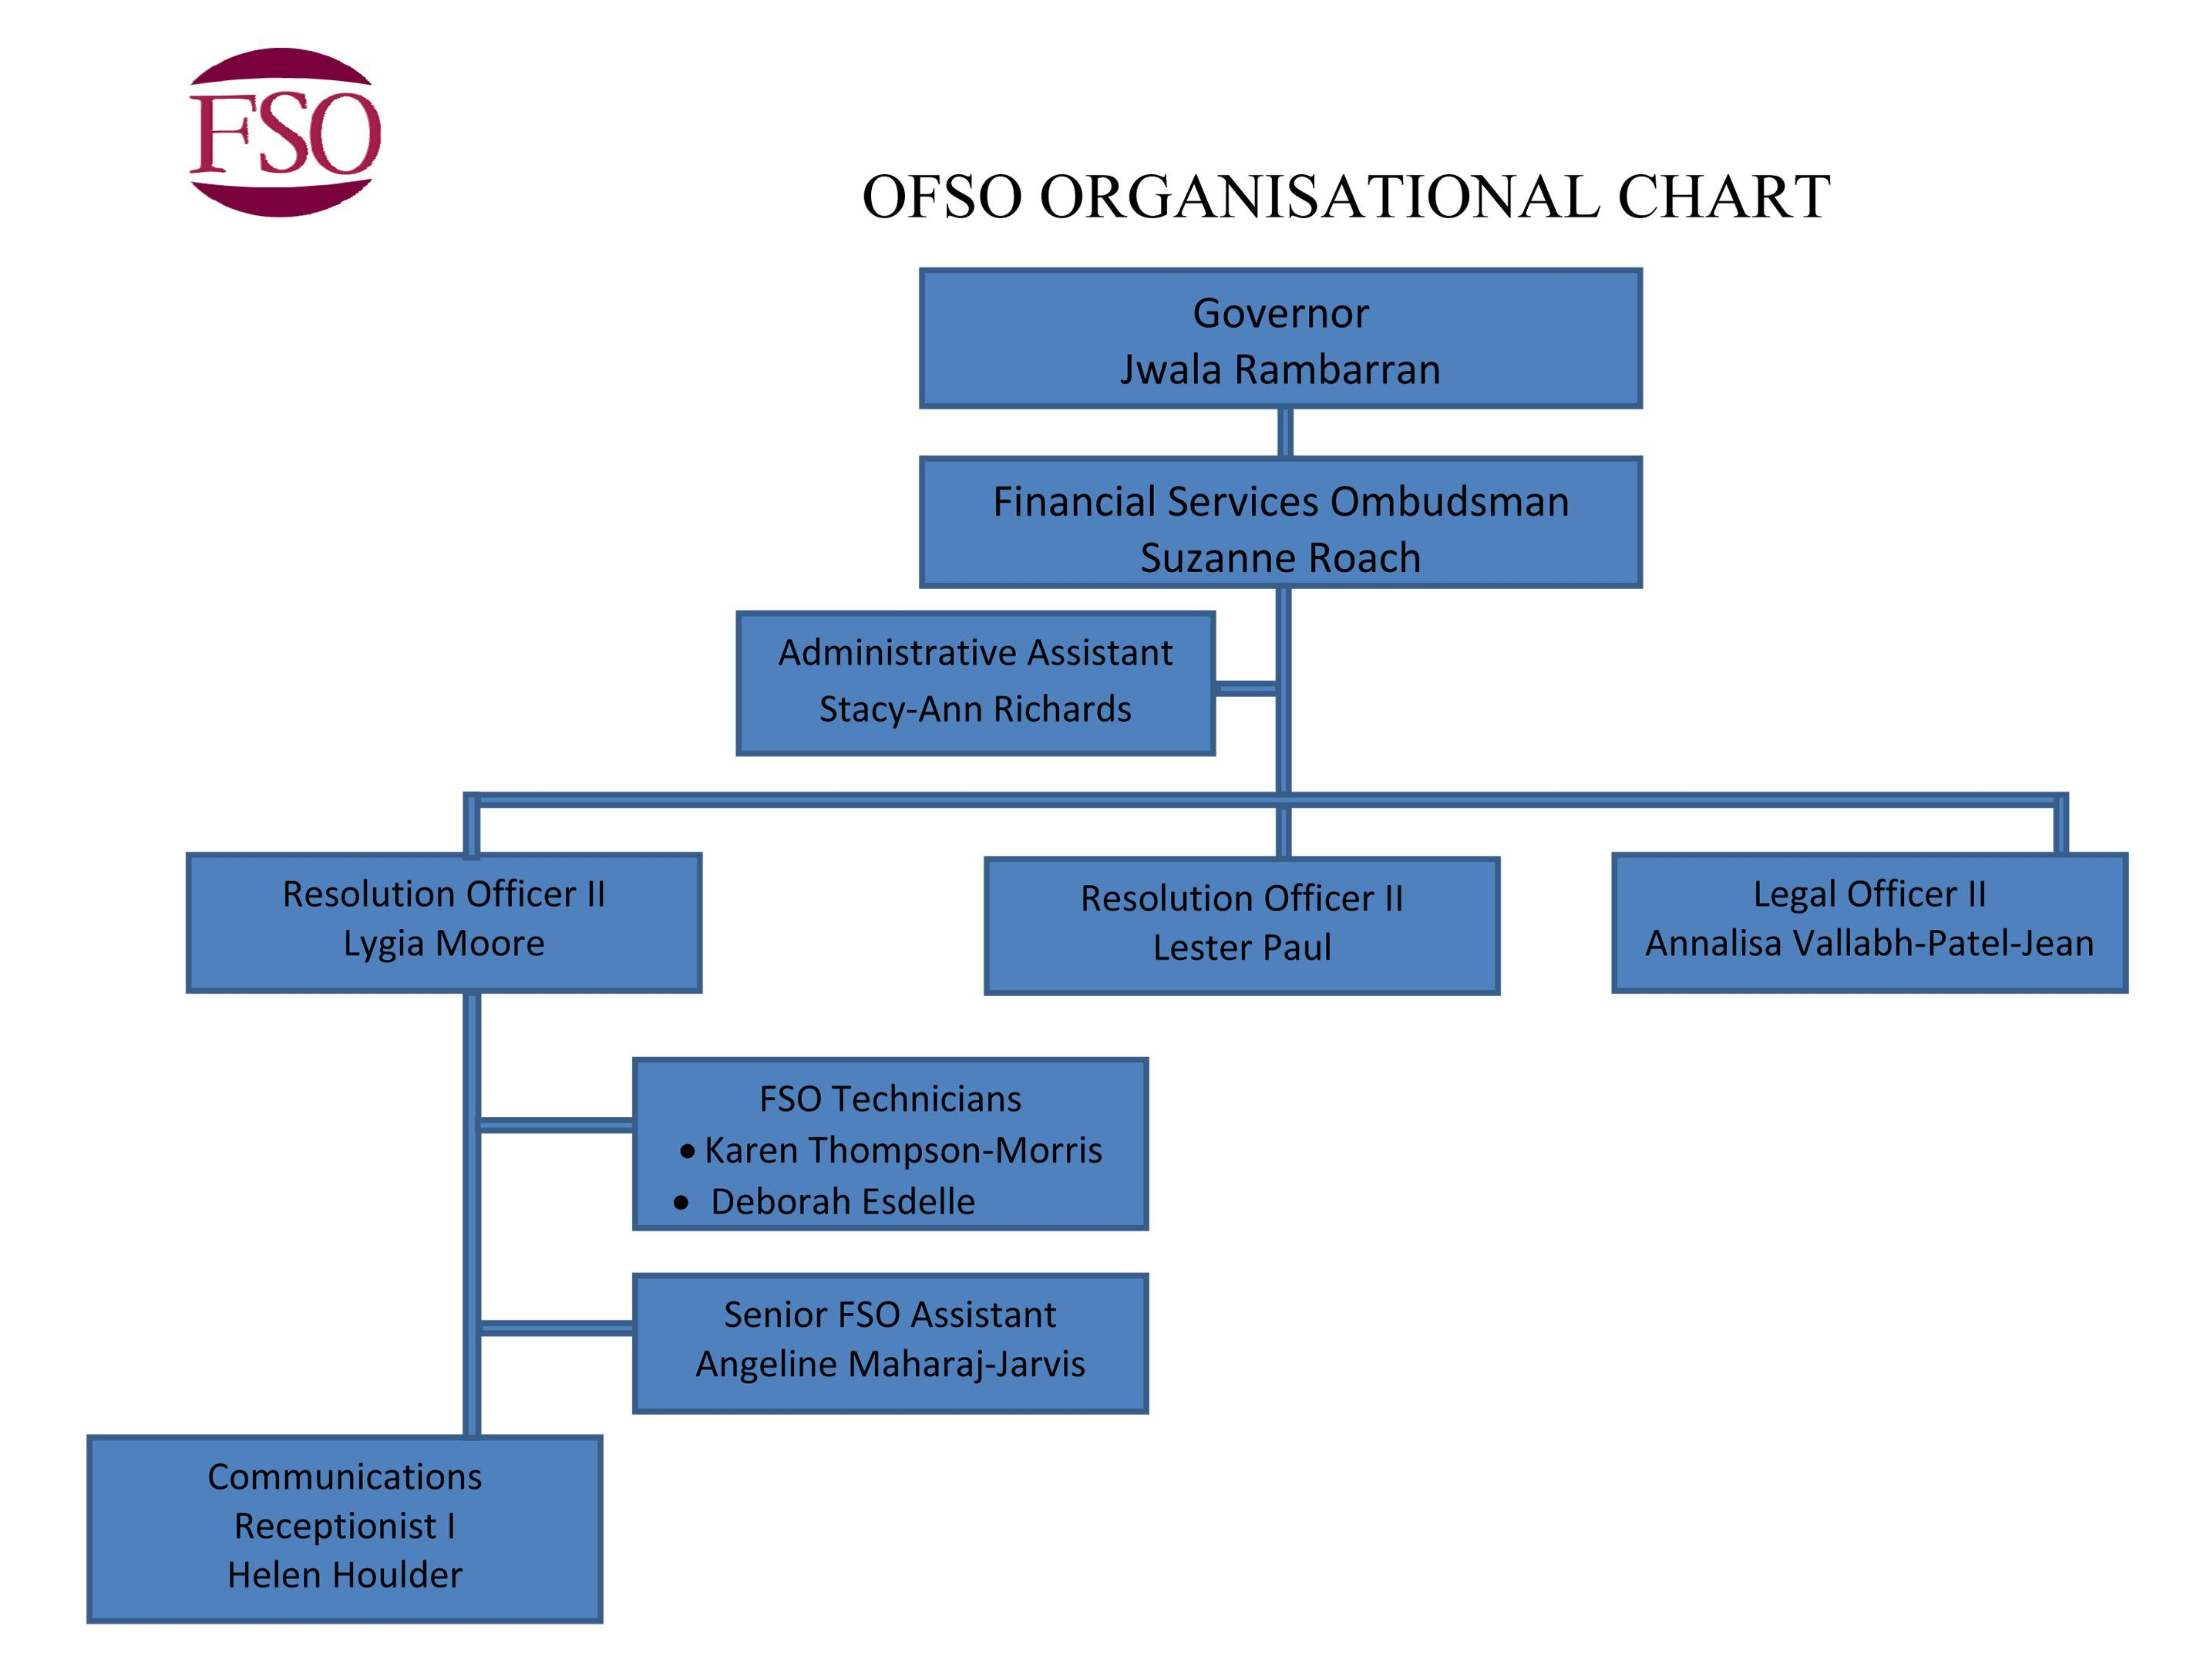 003 Unusual Organization Chart Template Word 2013 Idea  Organizational FreeFull